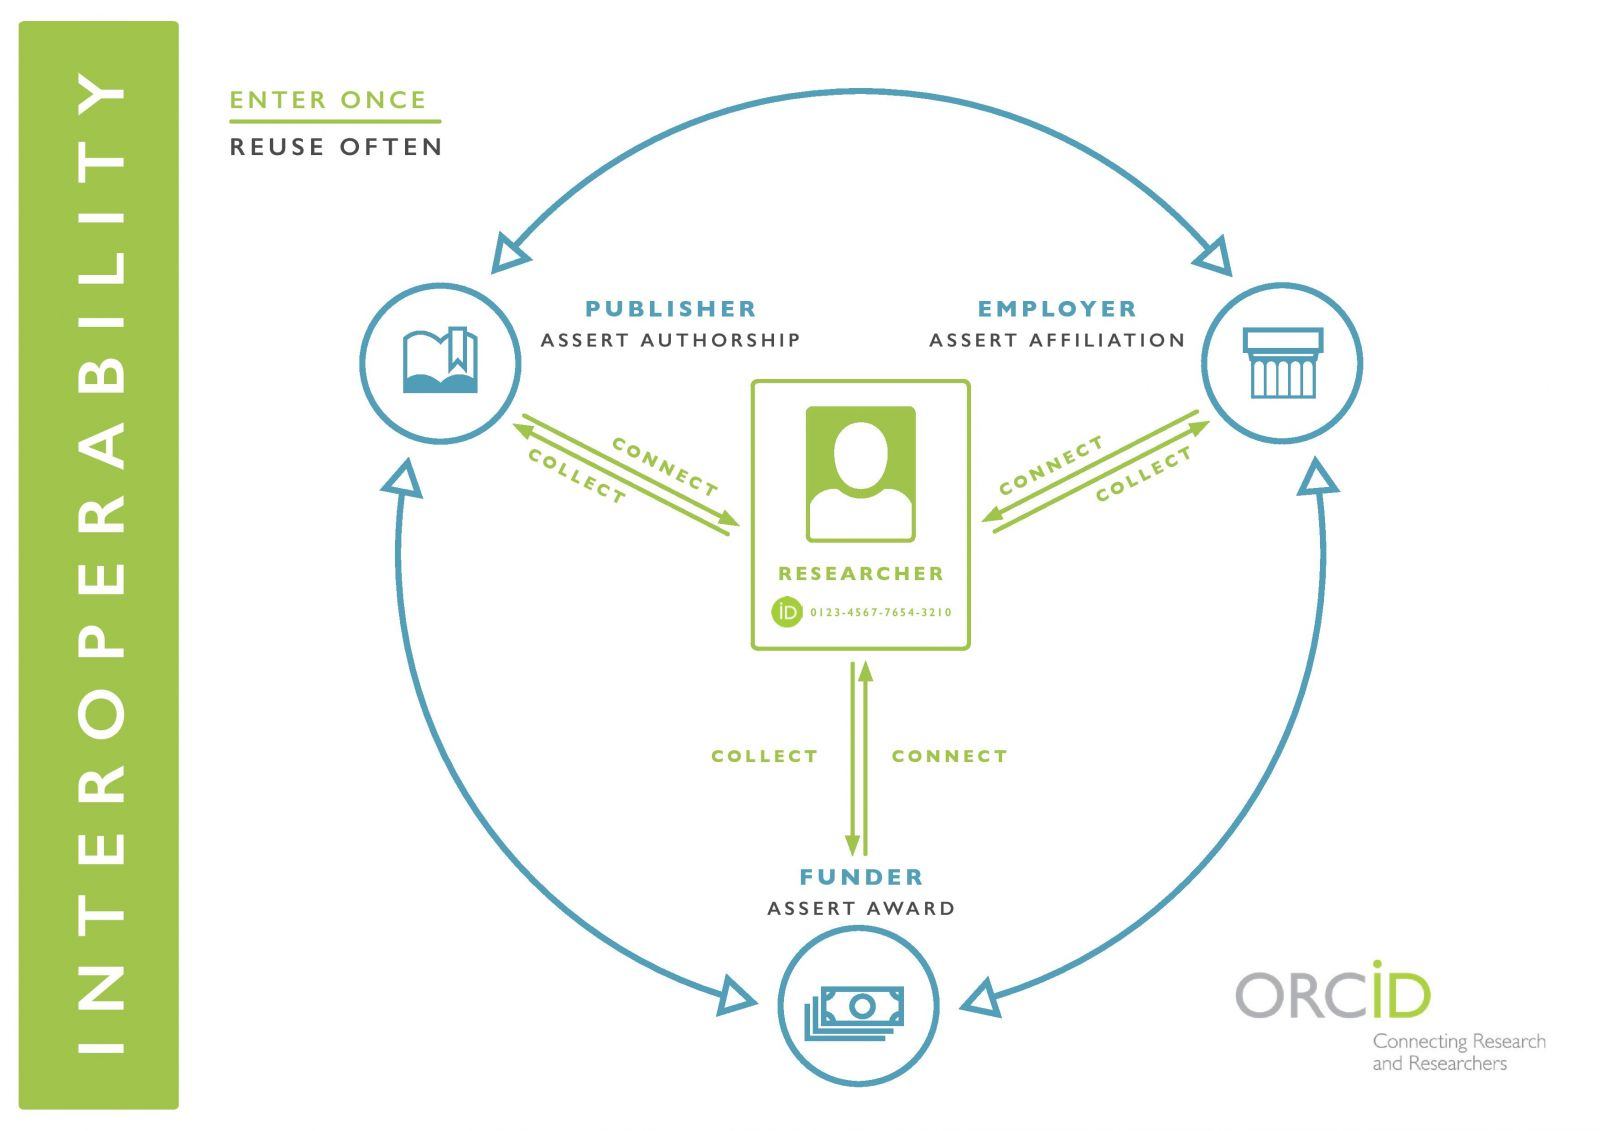 ORCID use graphic